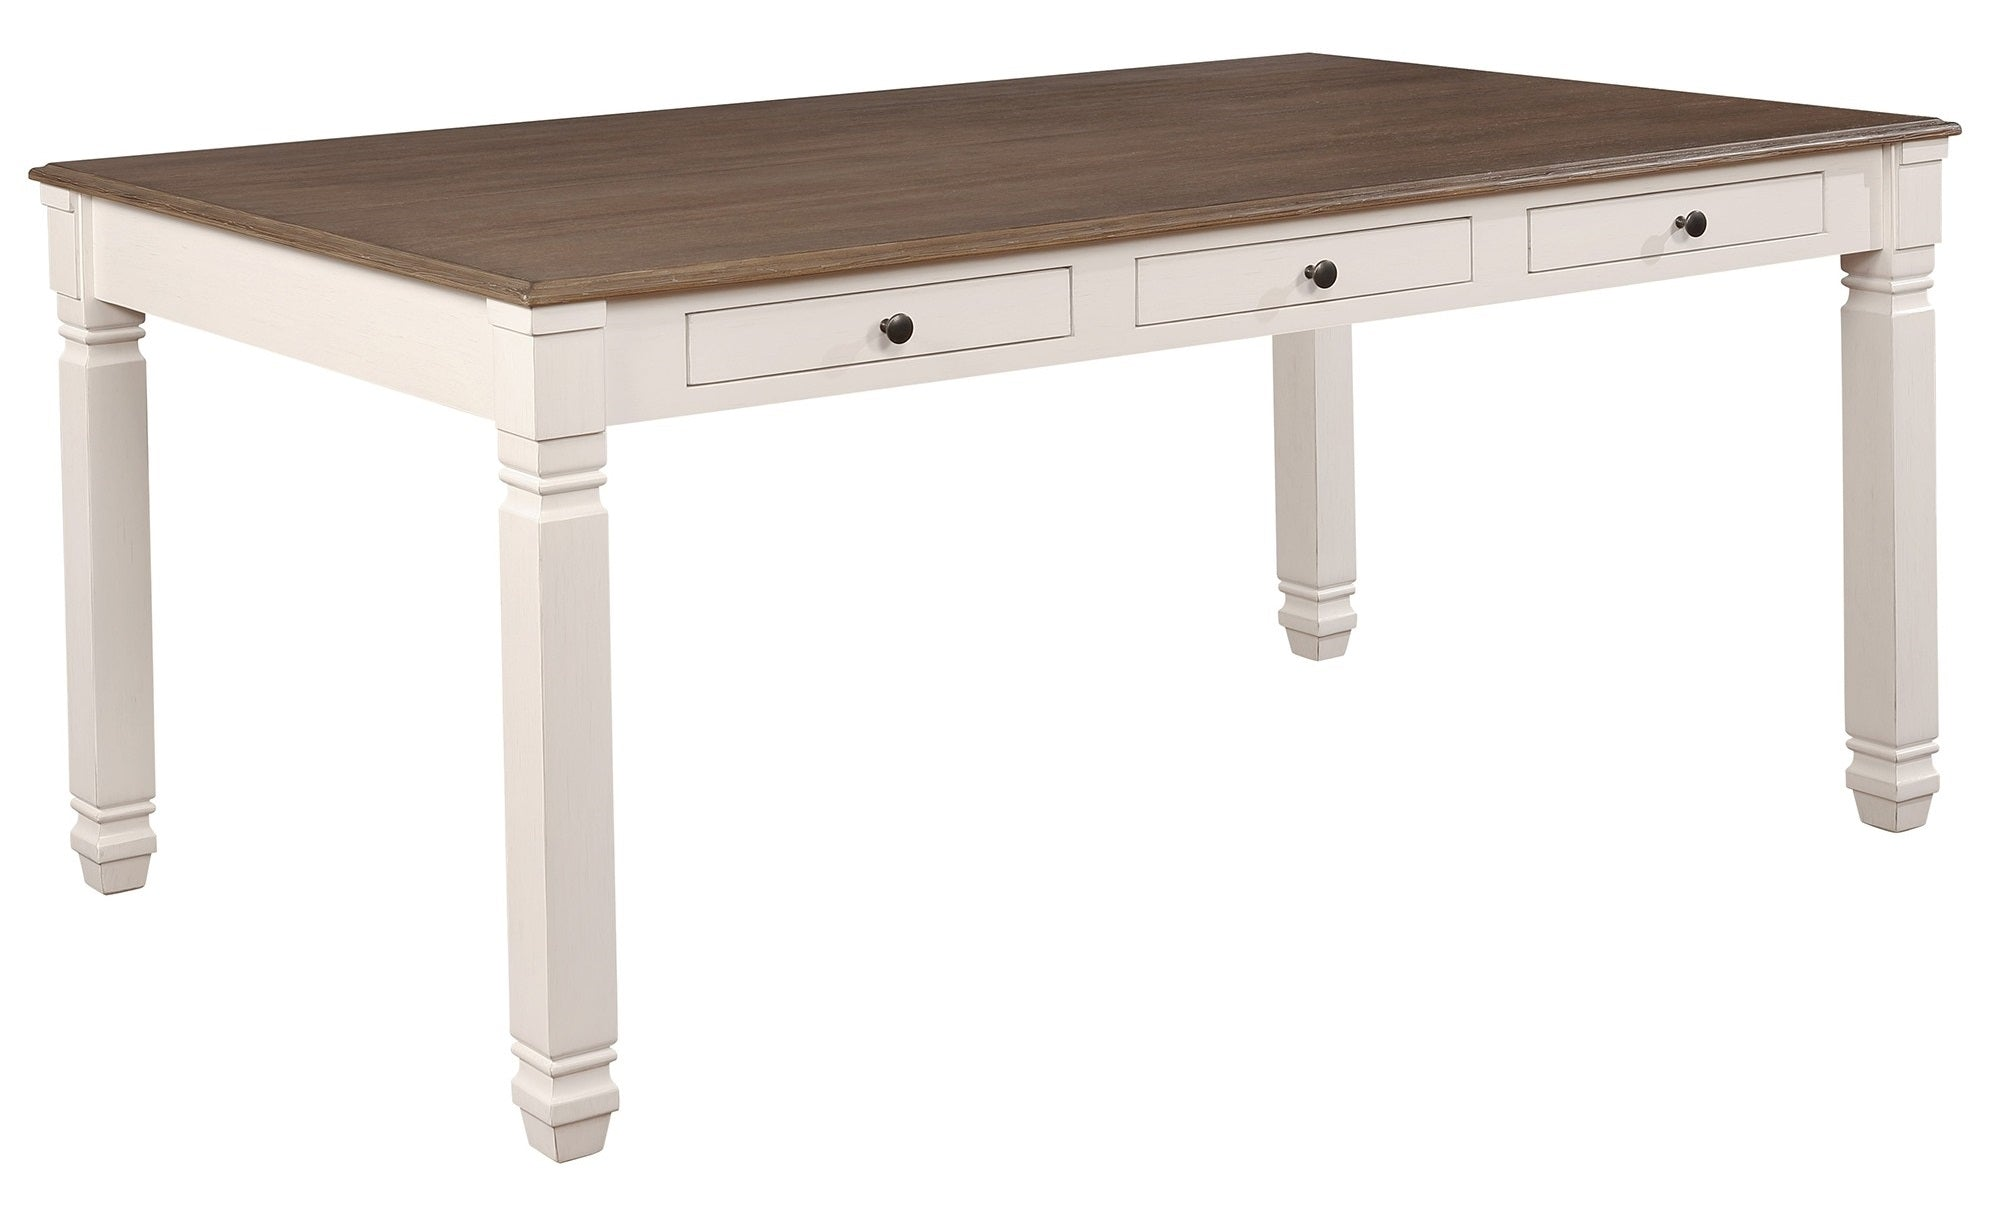 Highlands Rectangular Dining Table in Antique White/Oak